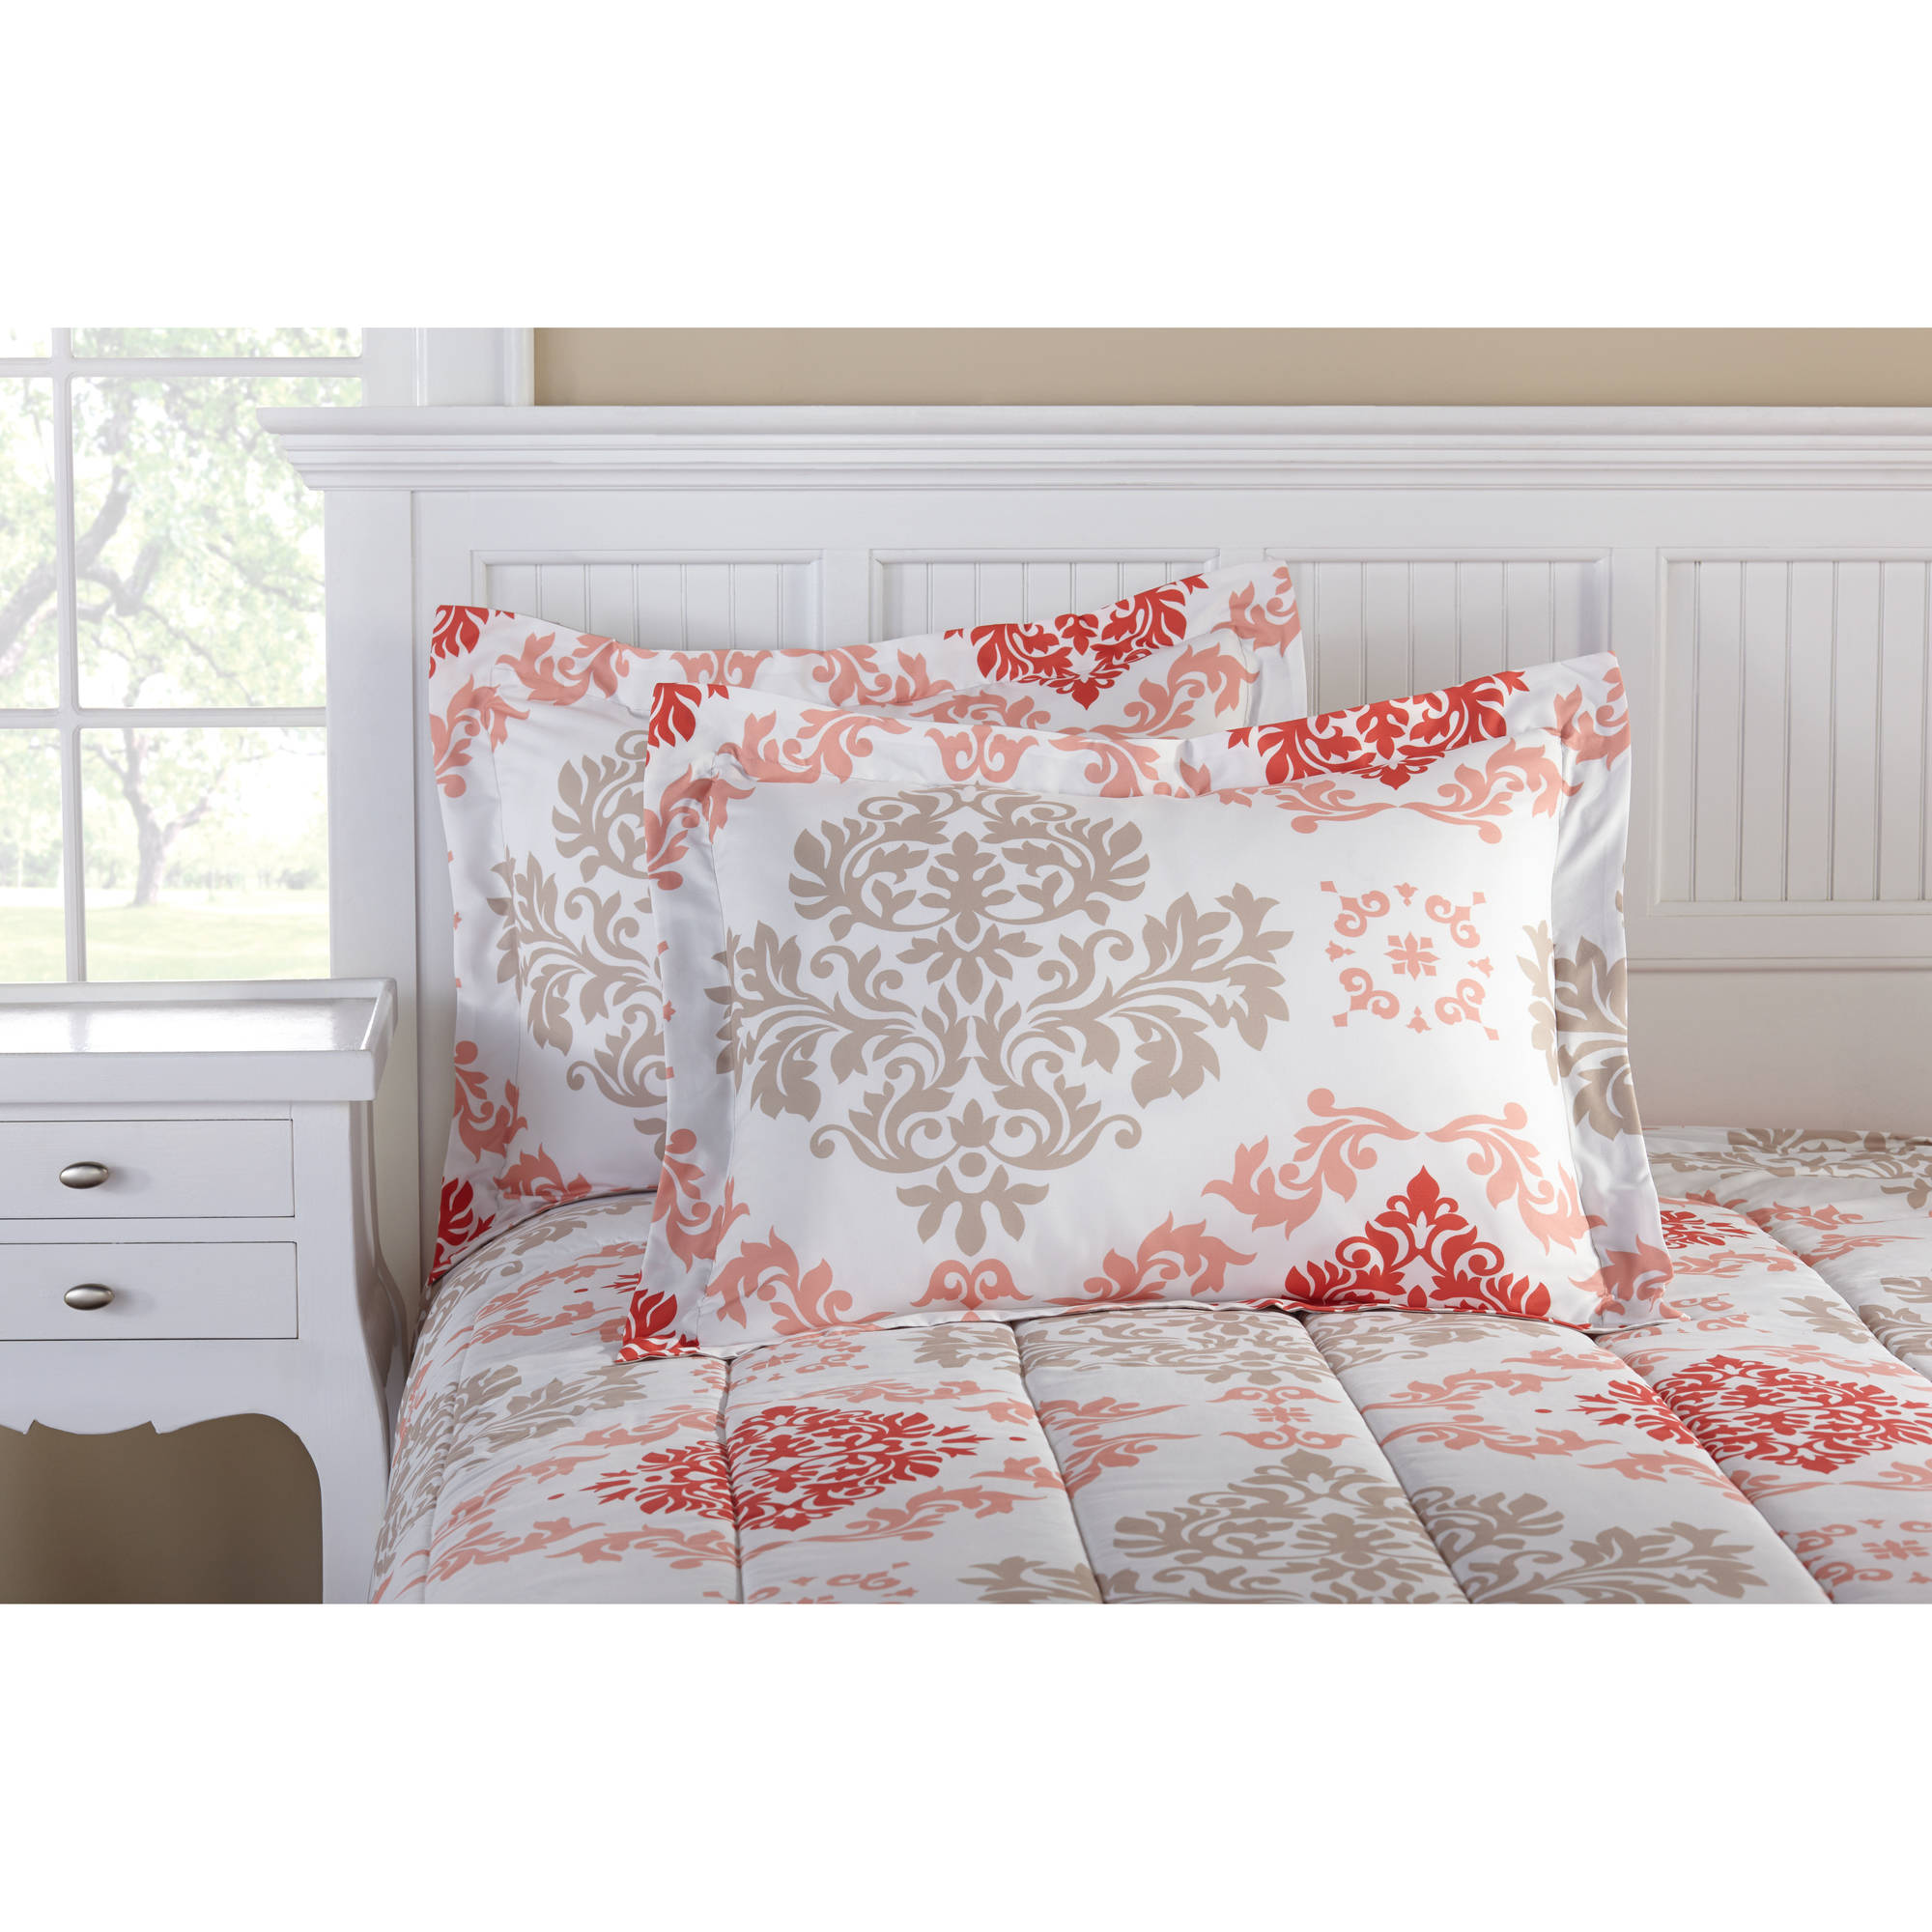 Mainstays Coral Damask Bed In A Bag Bedding Walmart Com Walmart Com